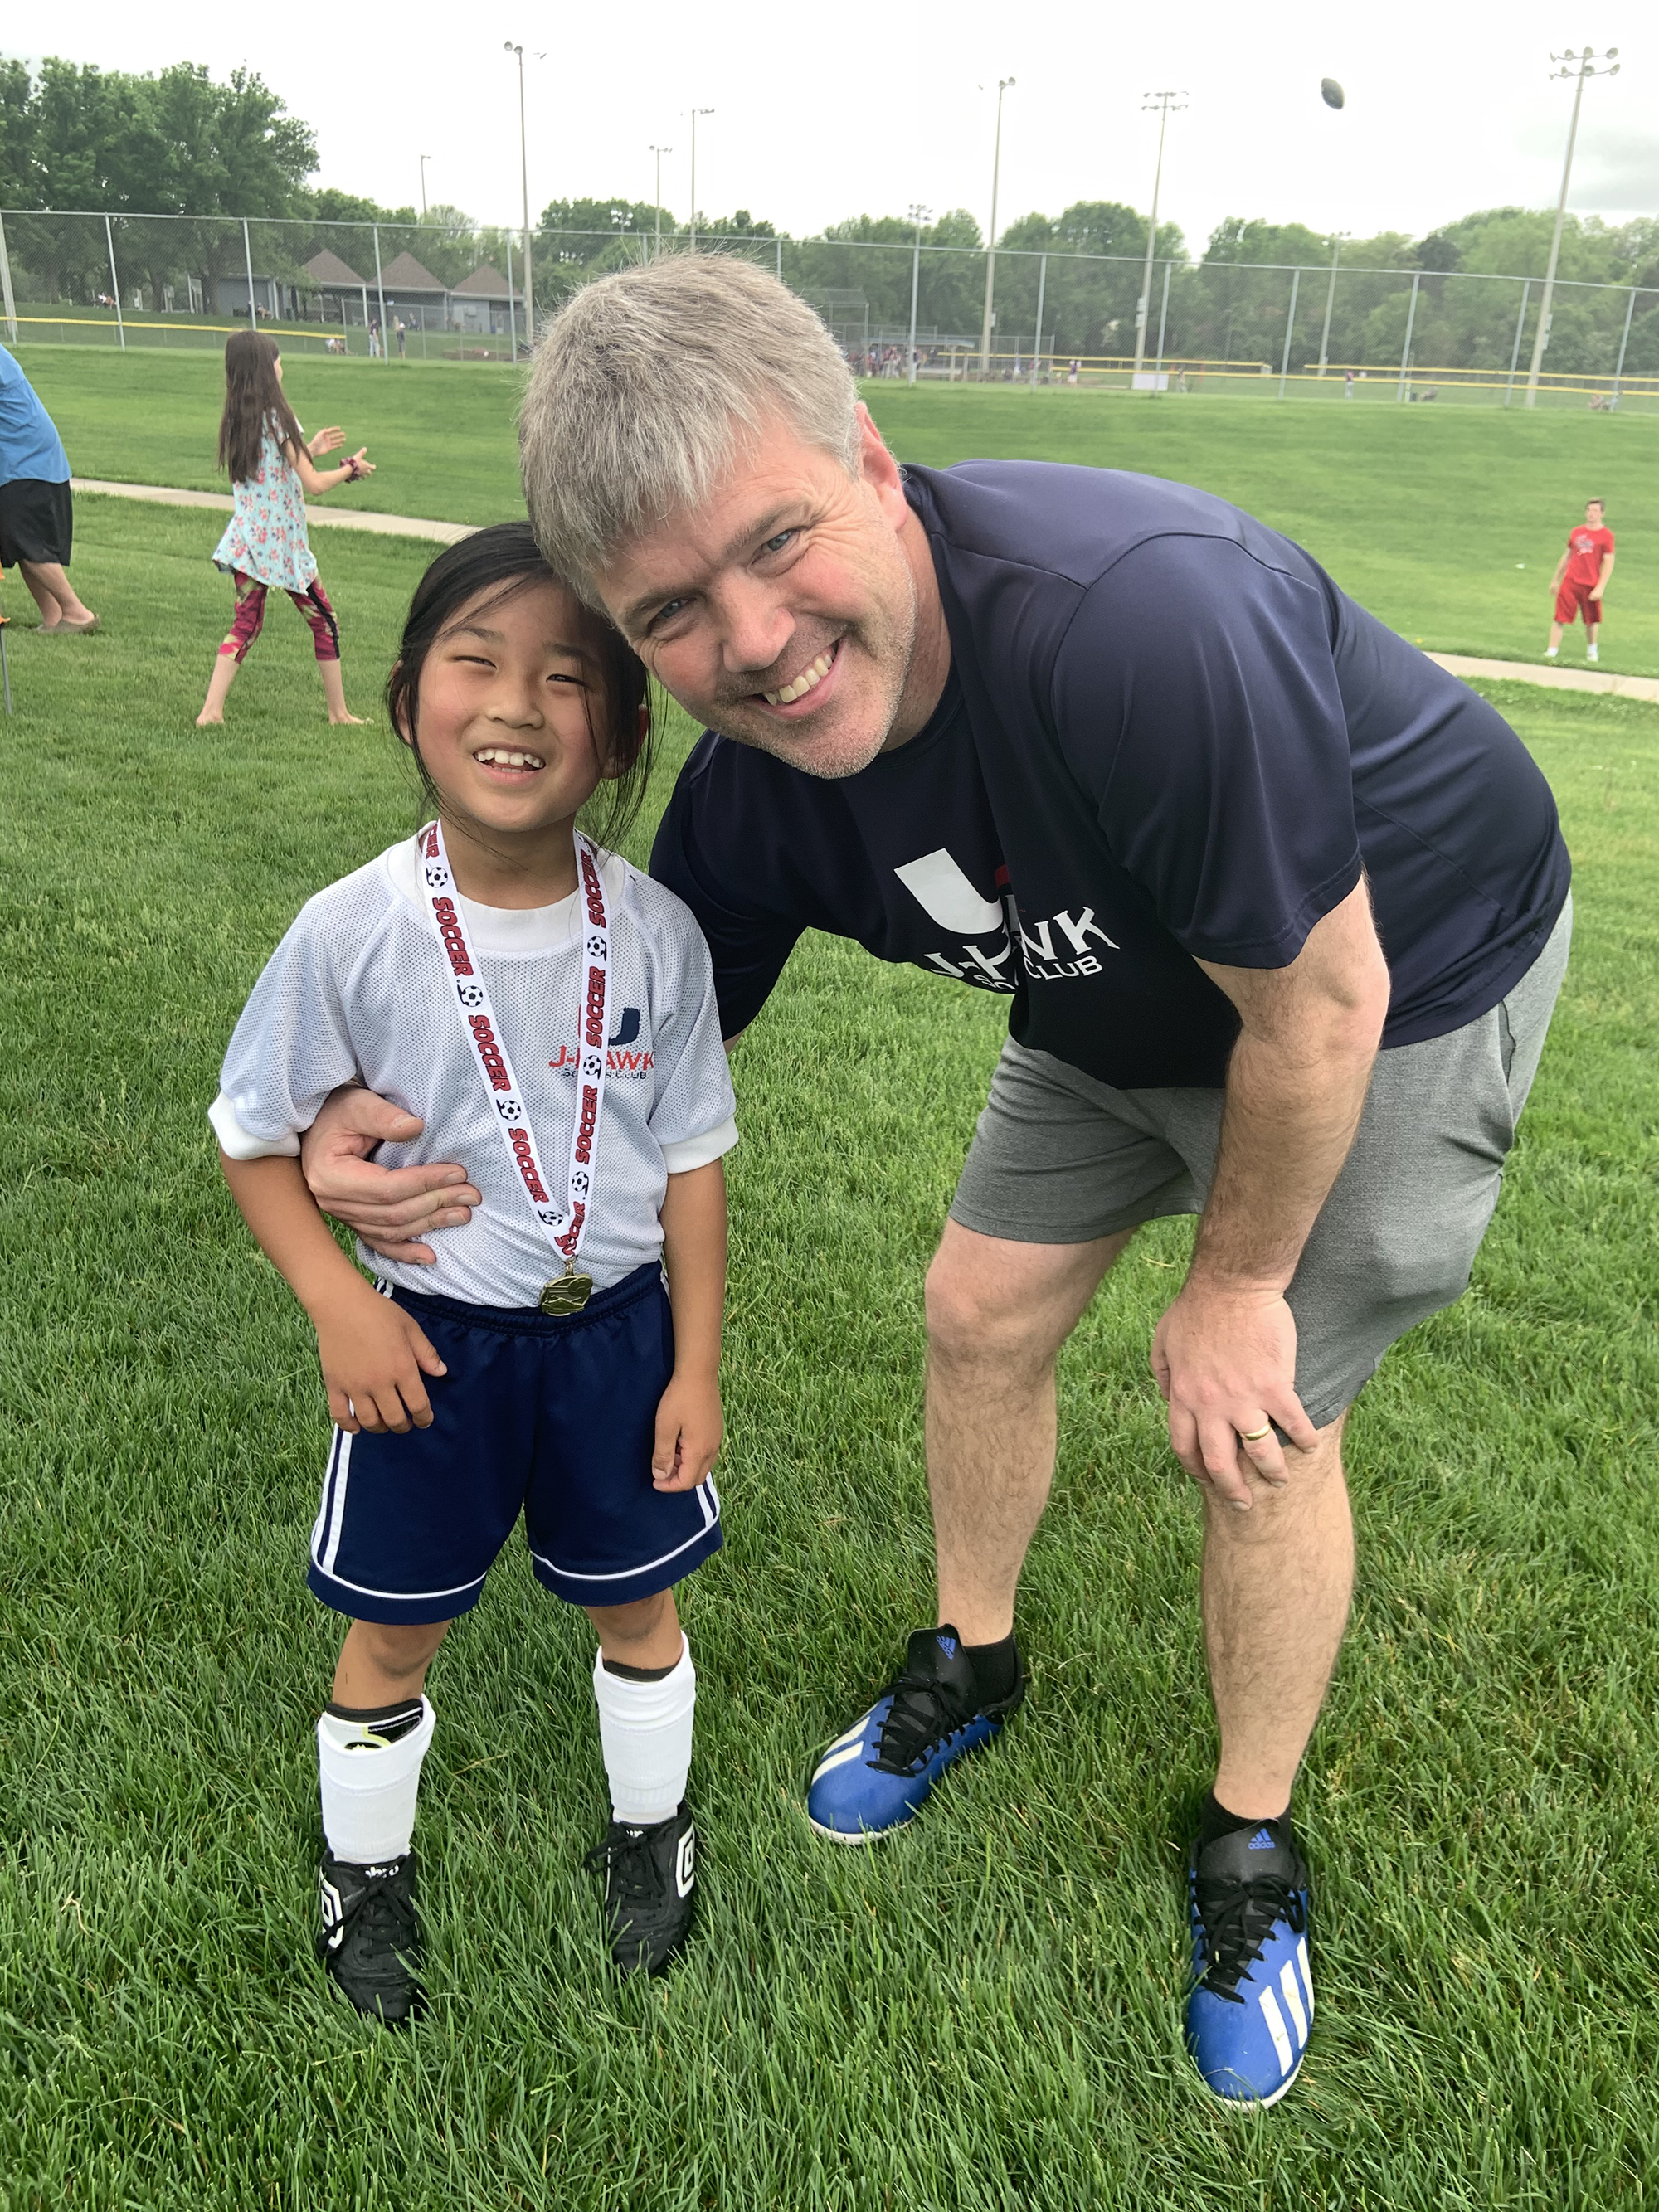 CC and her father at a soccer field